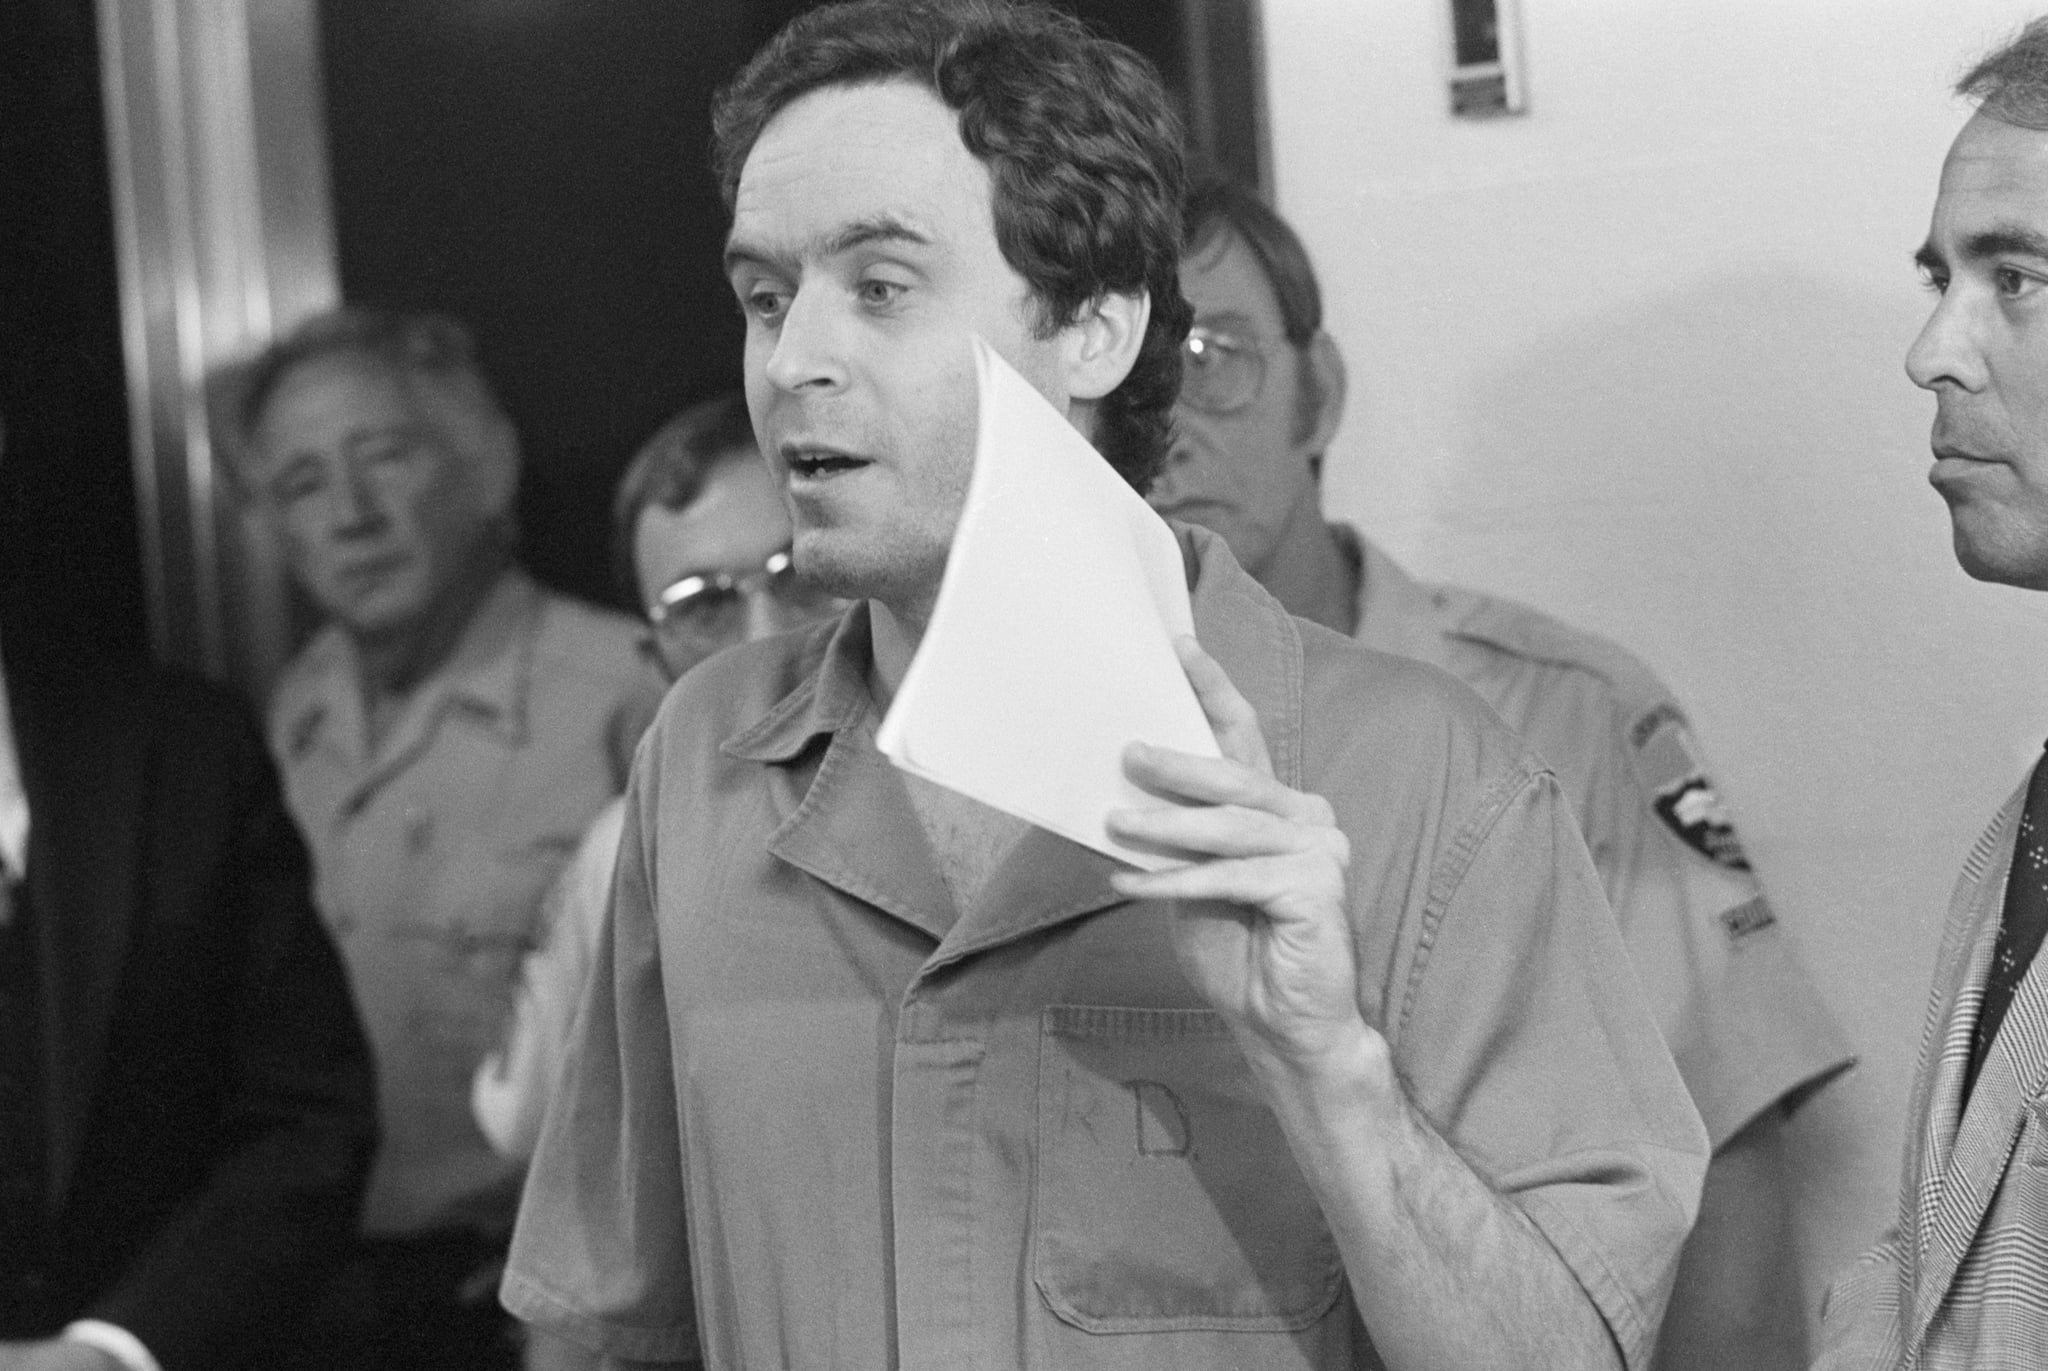 (Original Caption) Tallahassee, FL: Suspected murderer Theodoure Bundy, charged with the killings of FSU coeds Margaret Bowman and Lisa Levy who were beaten and strangled at the Chi Omega house in January. 7/27/1978